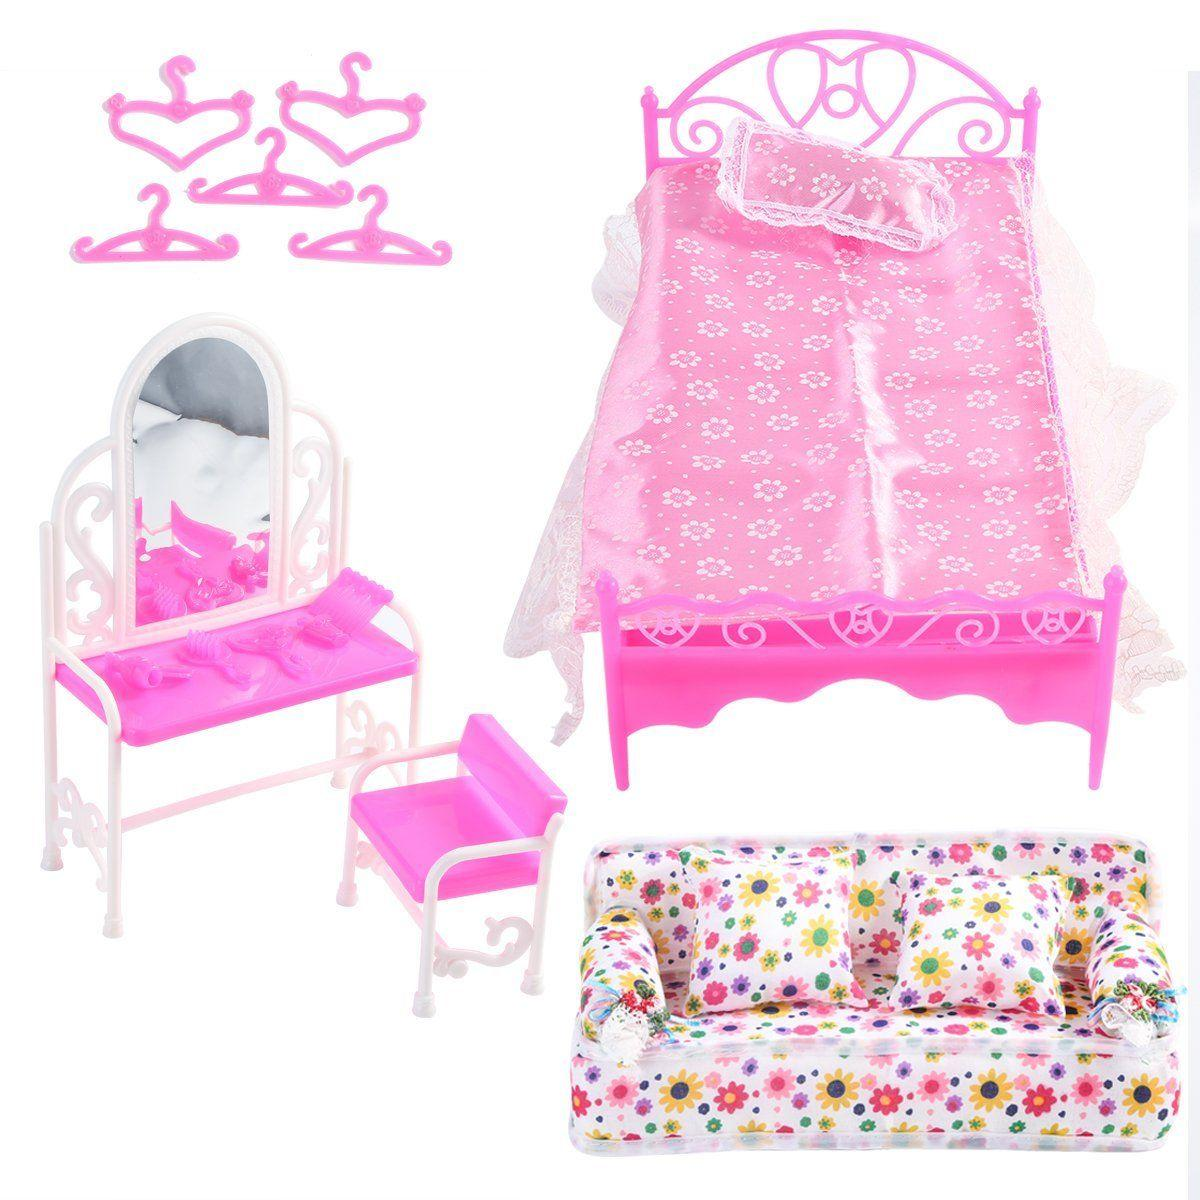 6x Sofa Chair Table Lamp Living Room Set Dolls House Miniature Furniture Toy